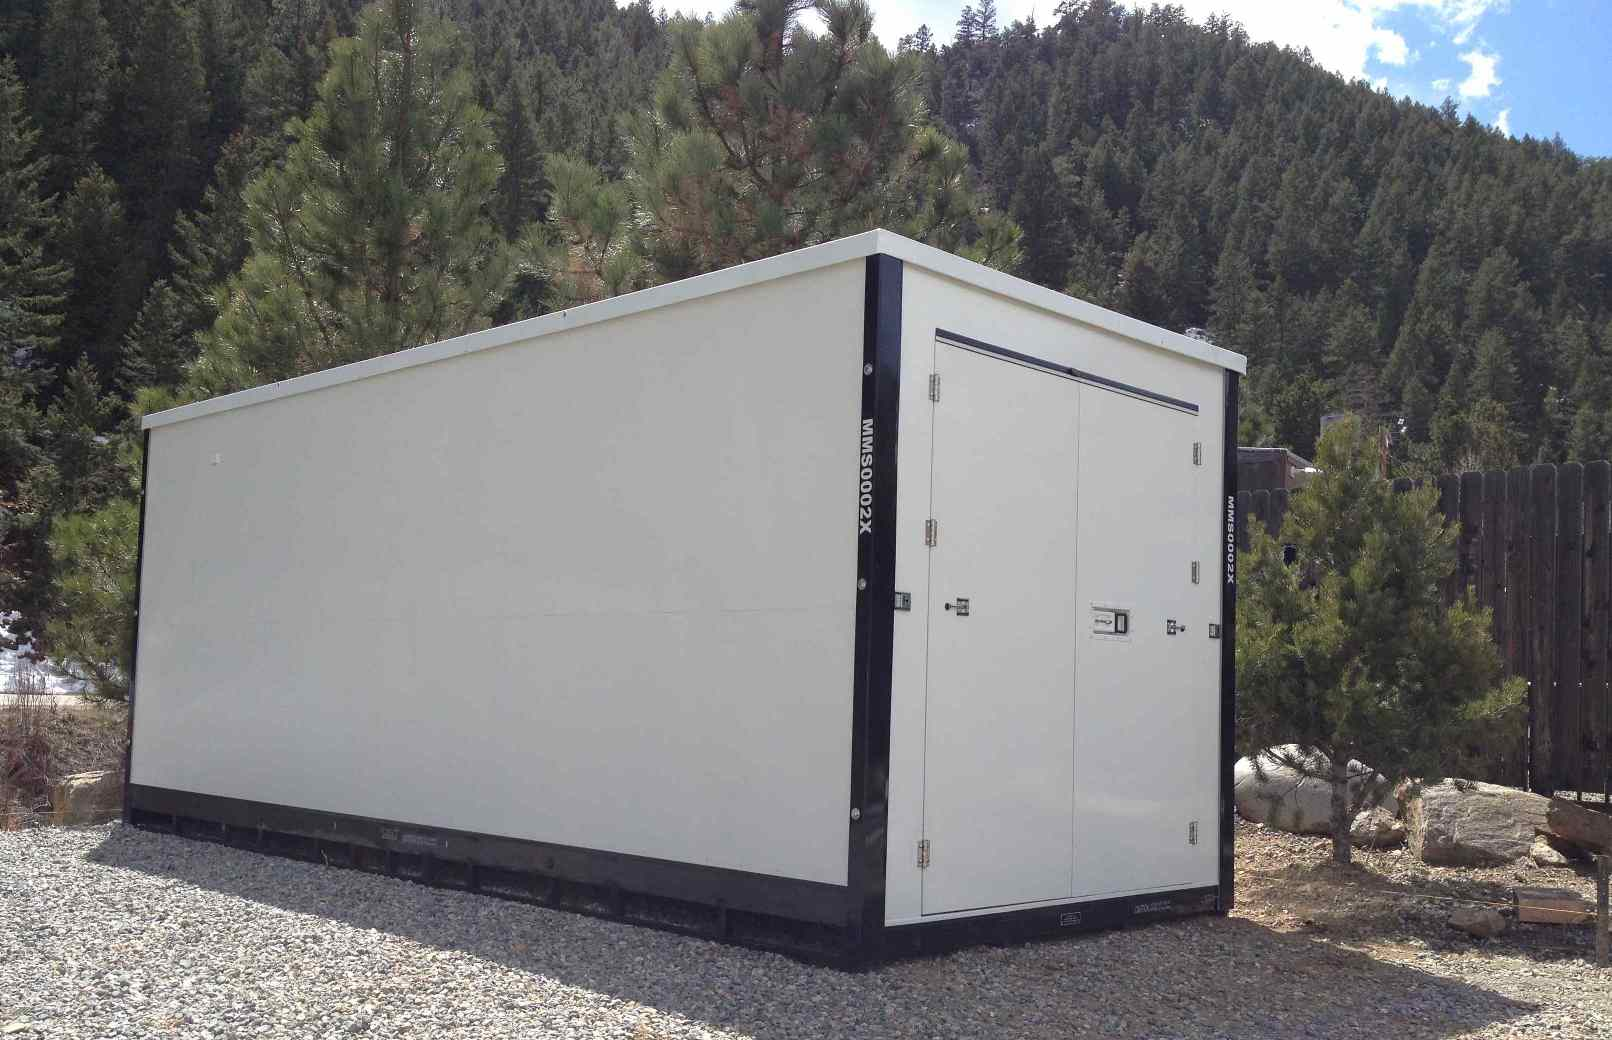 Fresh Sea Train Storage Containers ... & Southern Storage Containers - Listitdallas